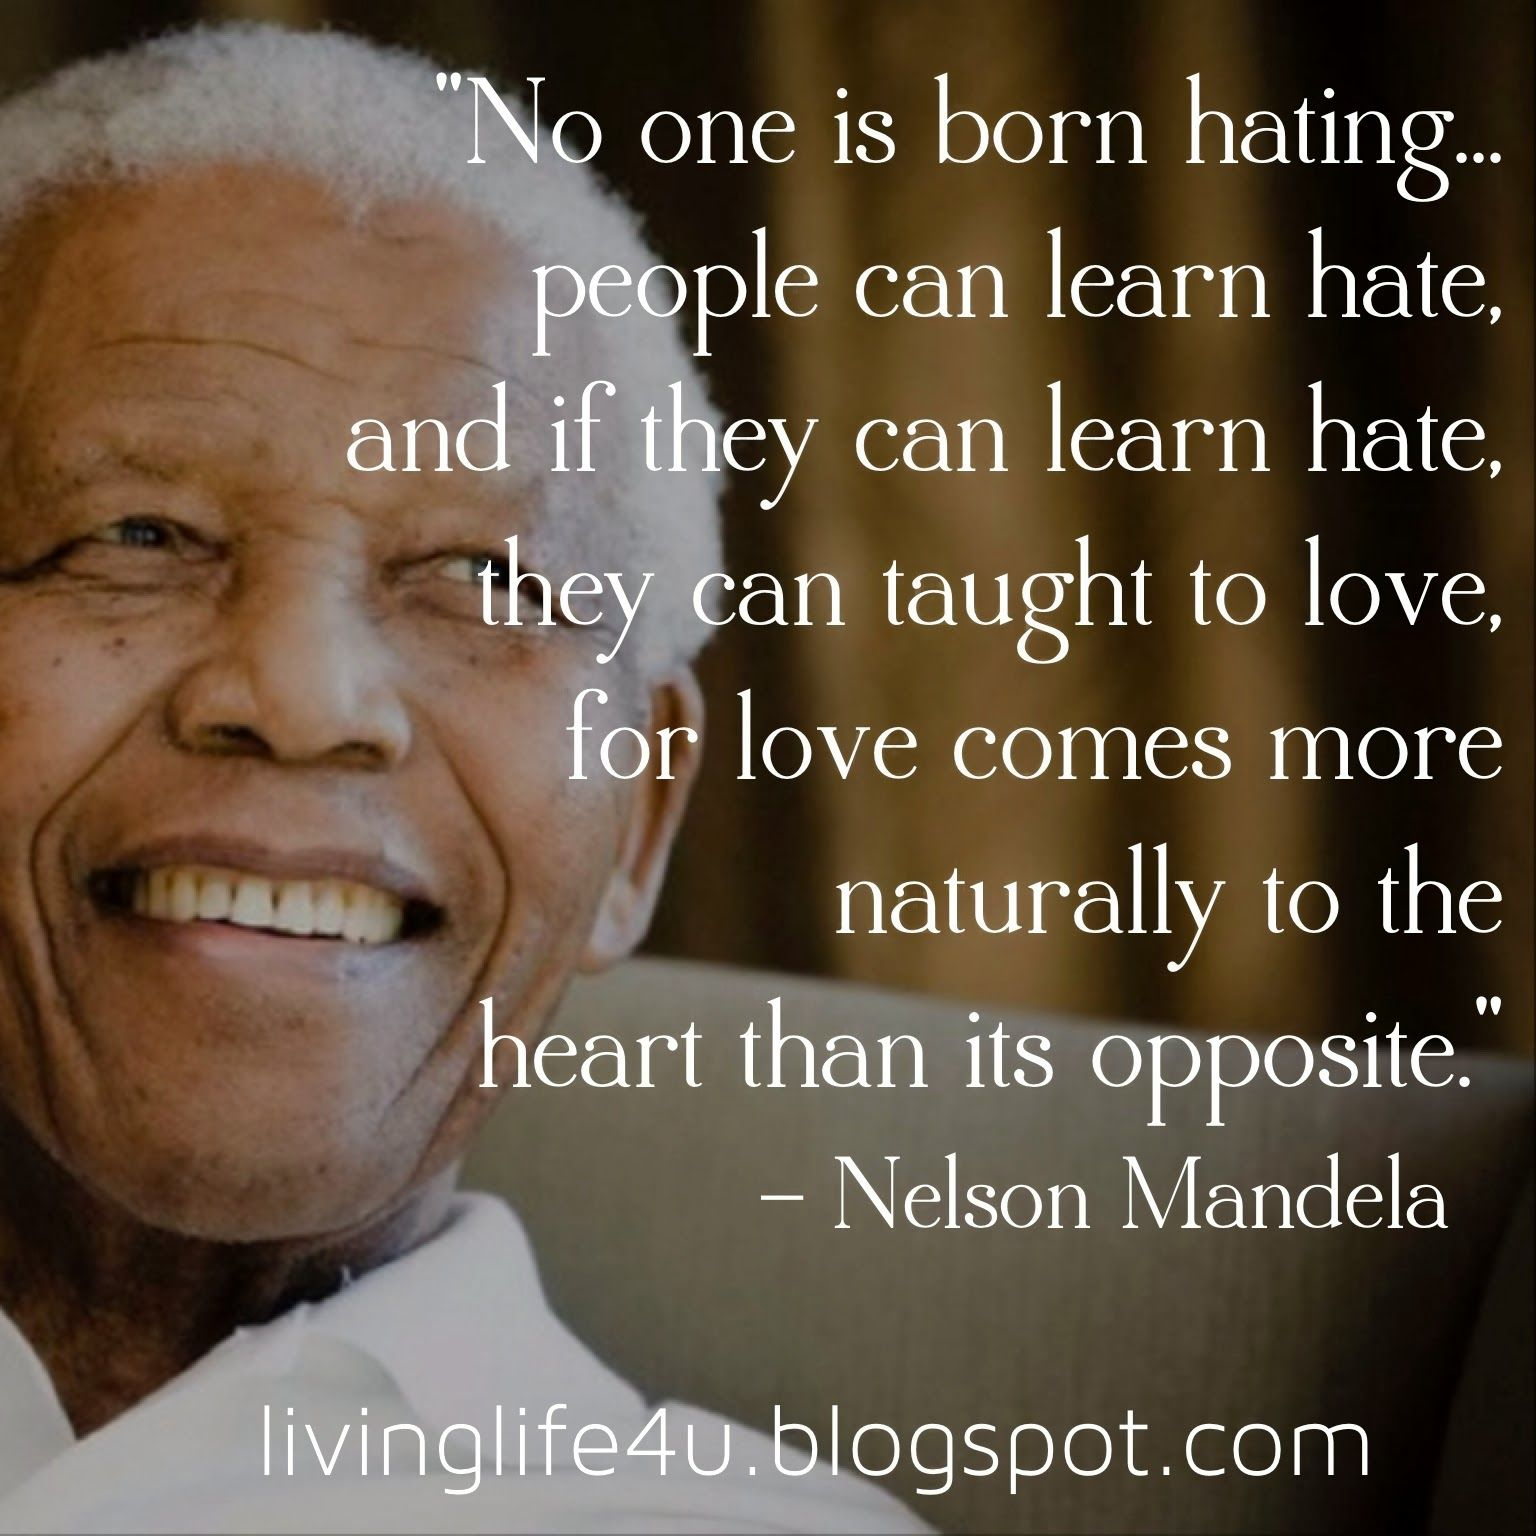 Spread Love Not Hate Quotes: The Final Day Of Our Tribute To The Wisdom Of Nelson